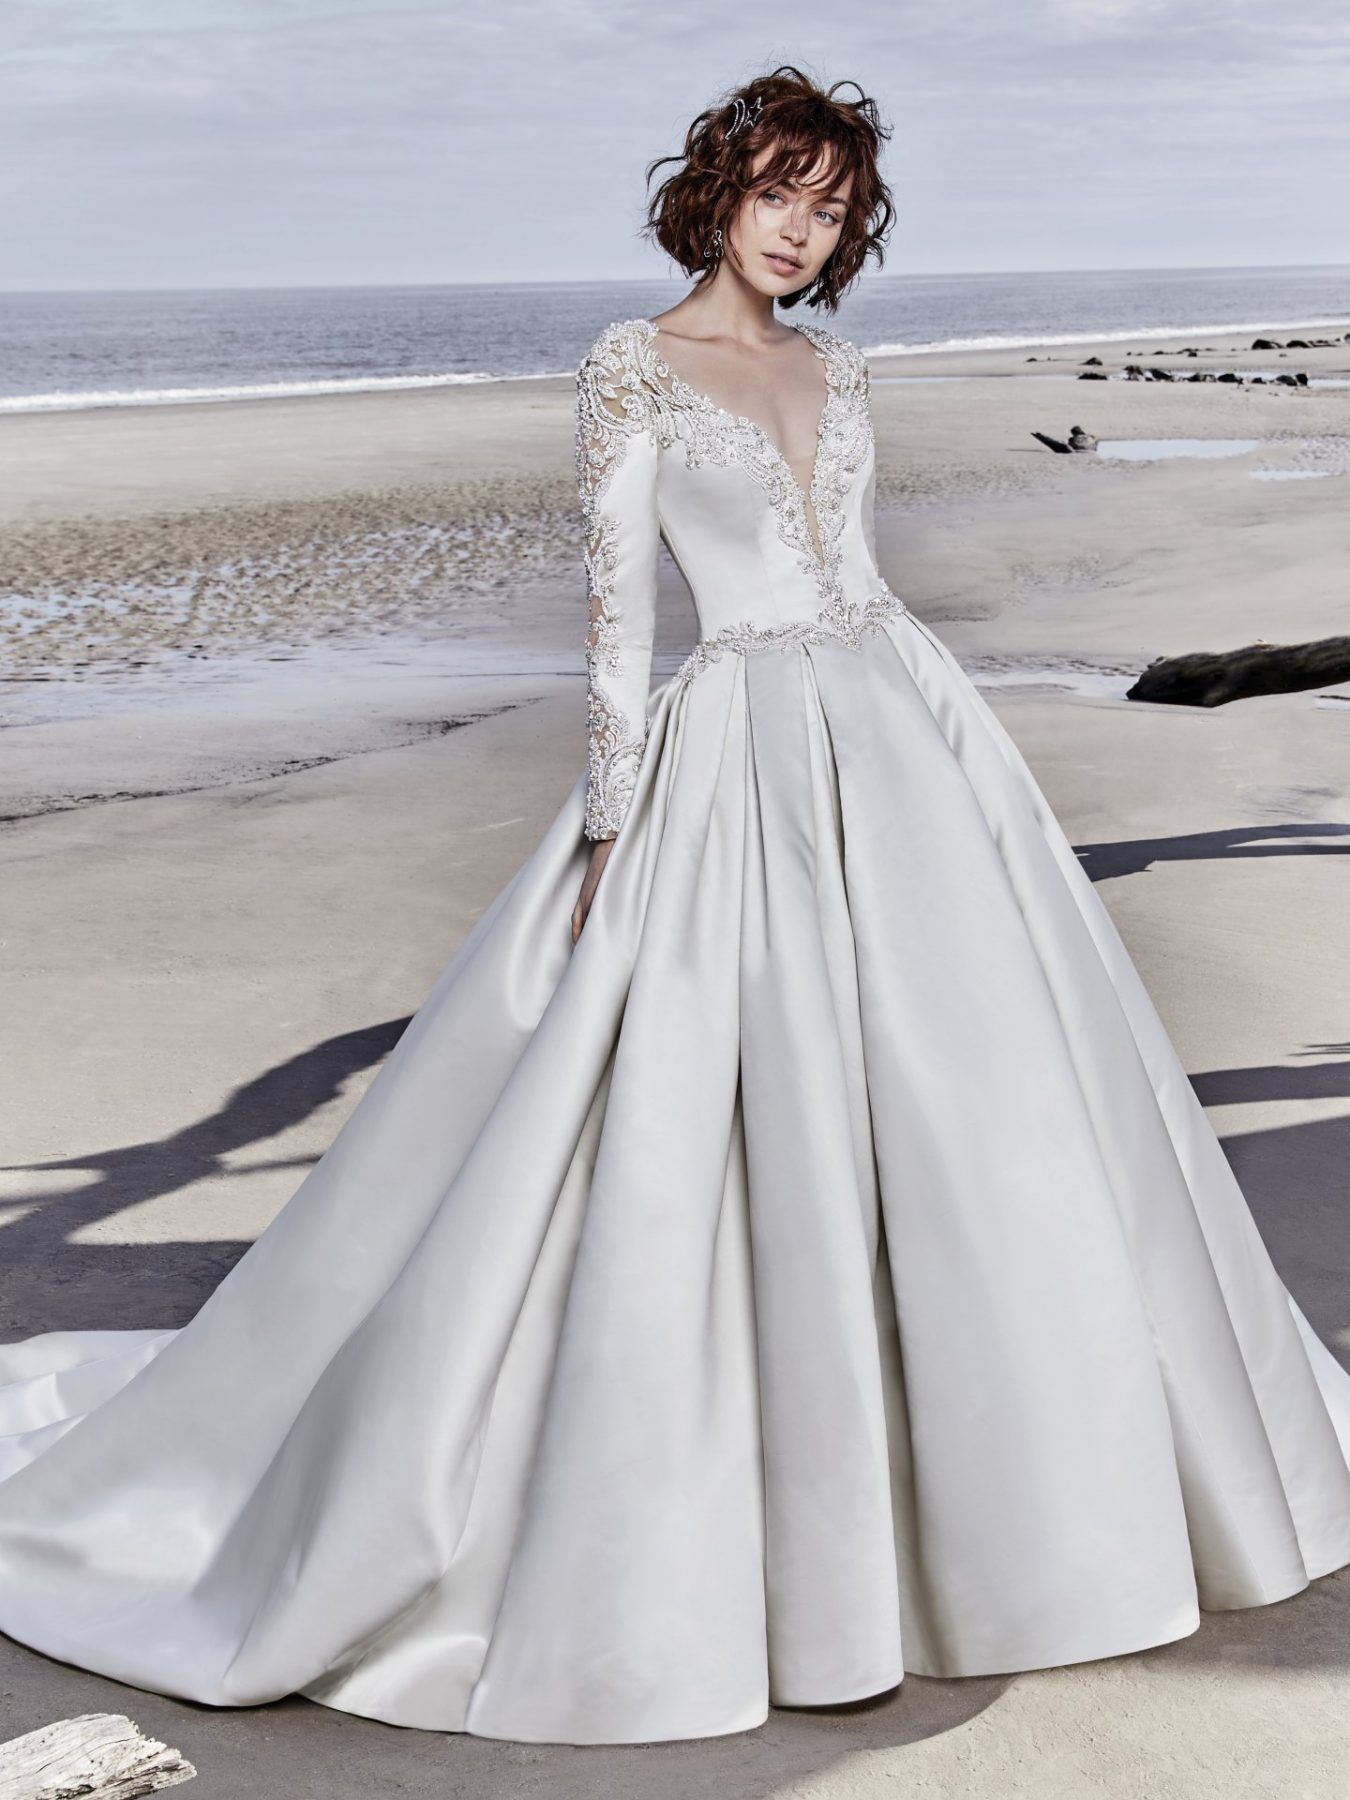 25603bb48d761 Long Sleeved V-neck Crystaled Lace And Satin Ball Gown Wedding Dress ...